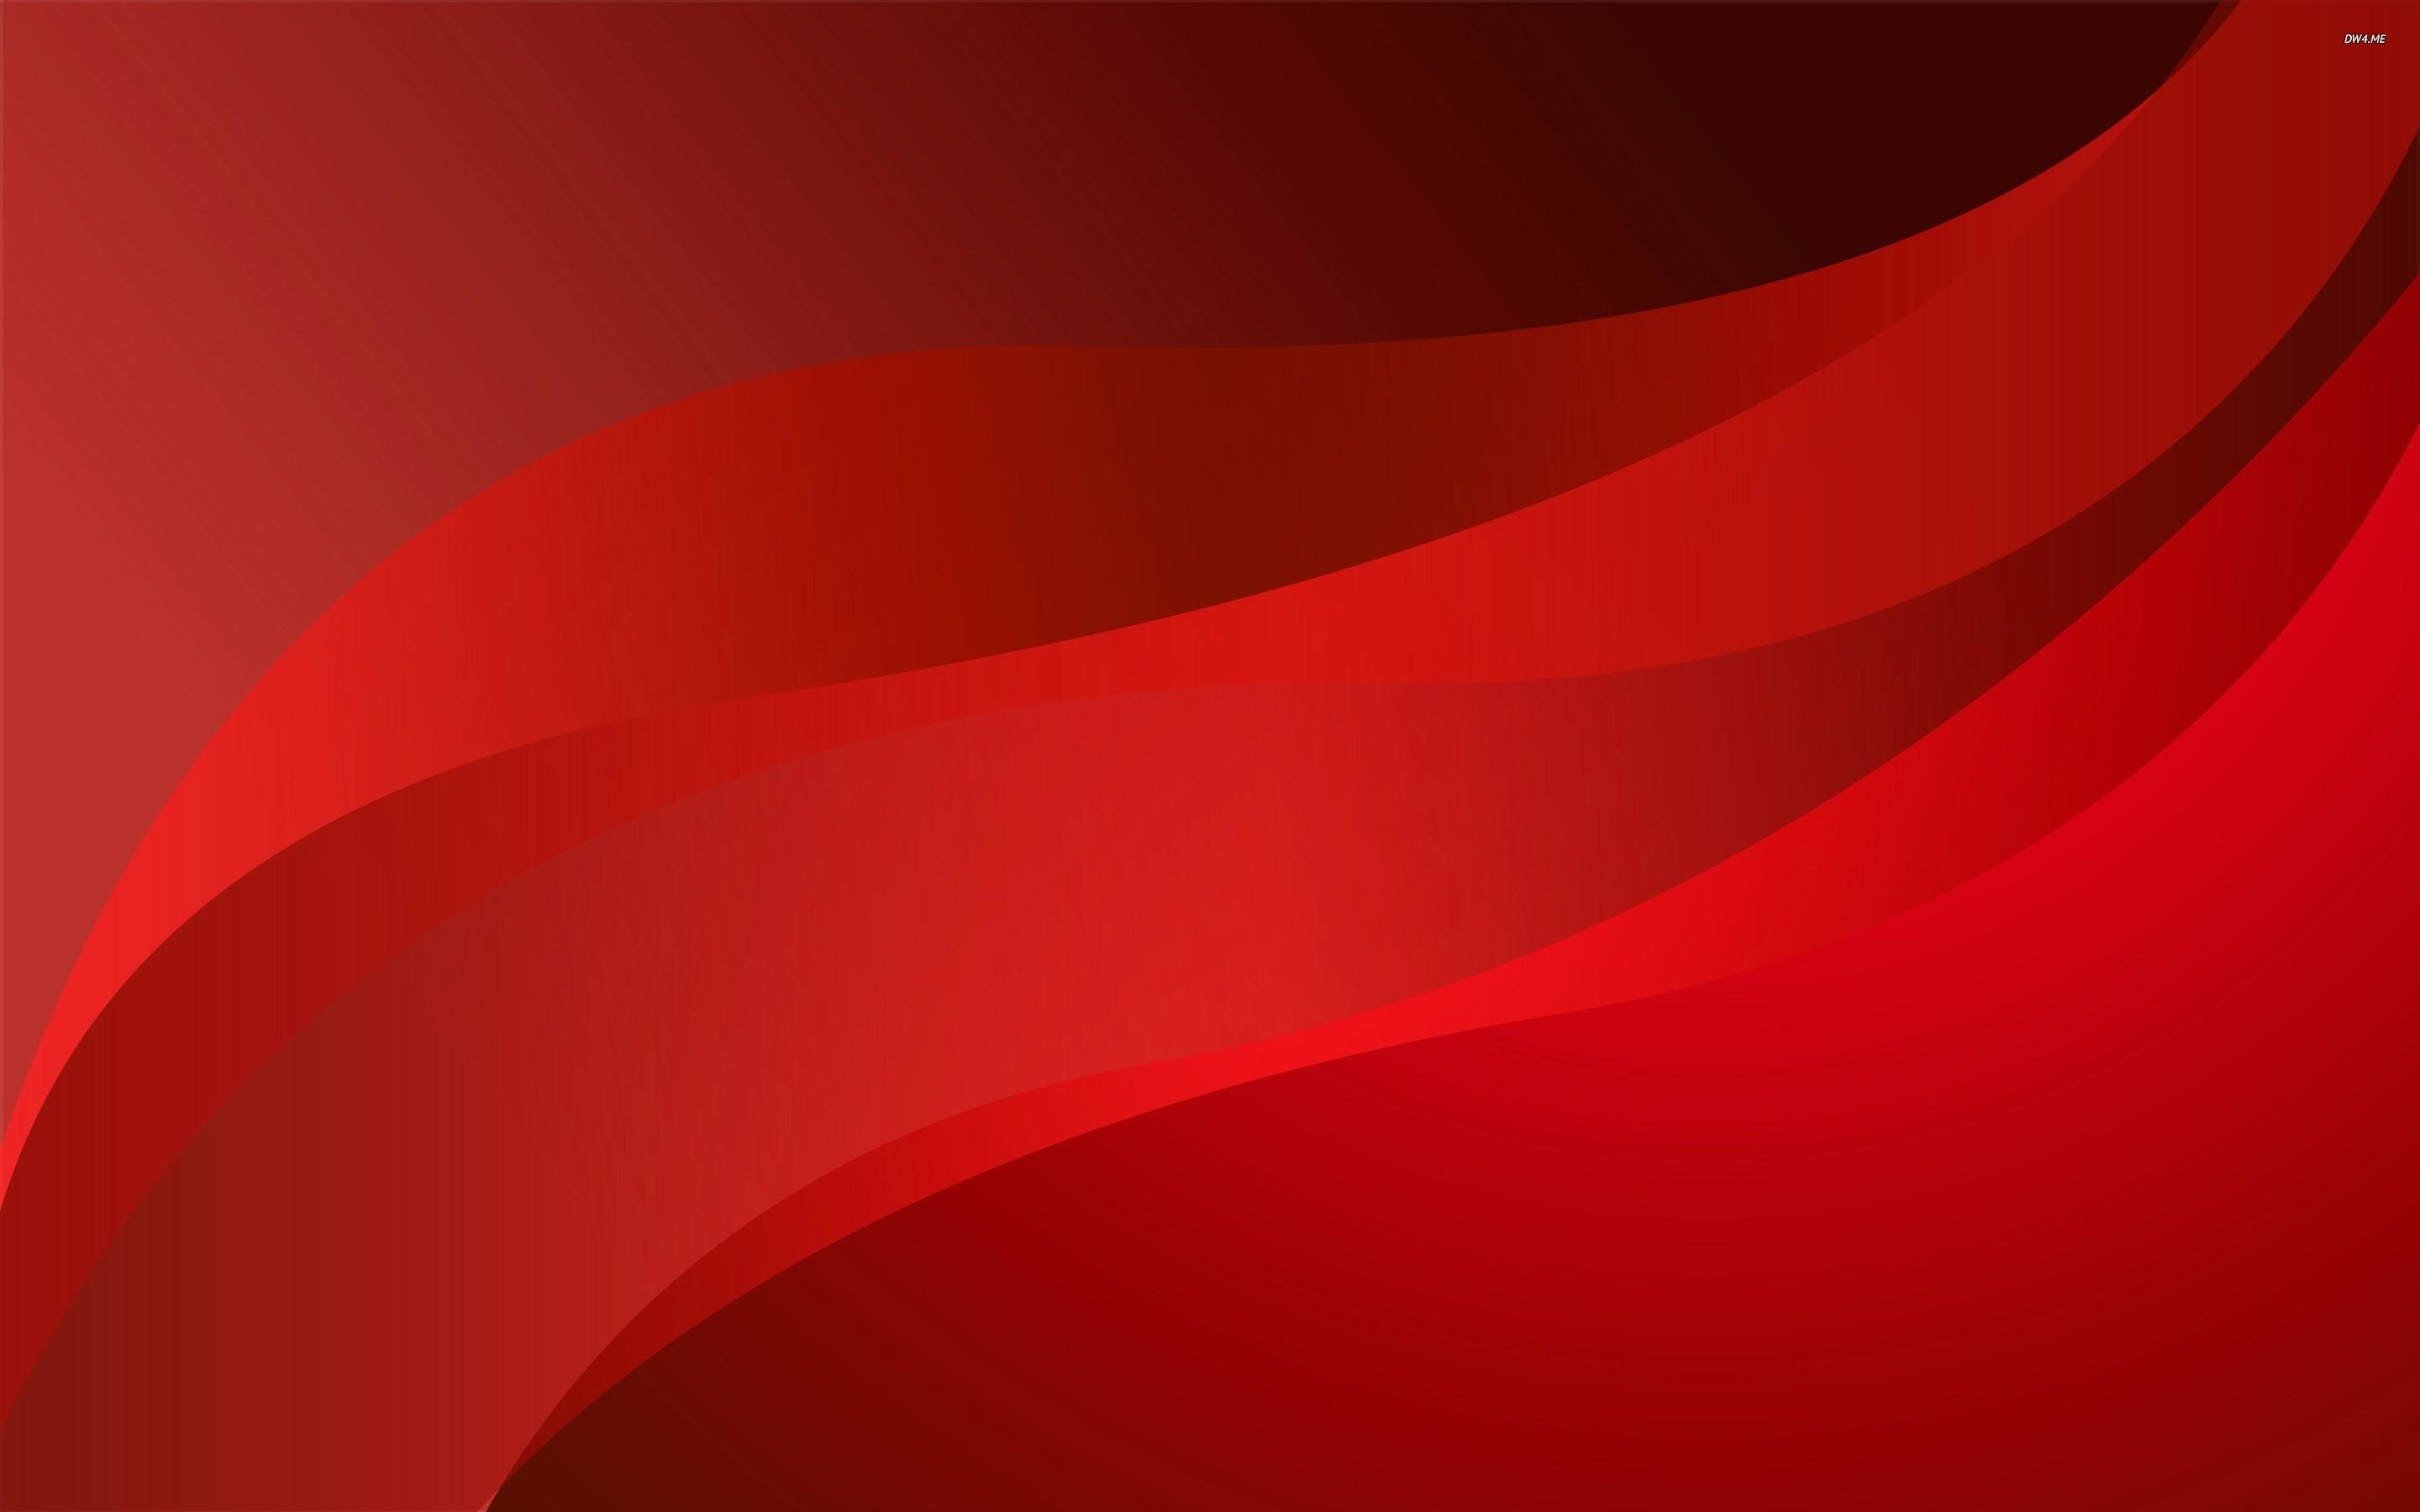 Red Abstract images